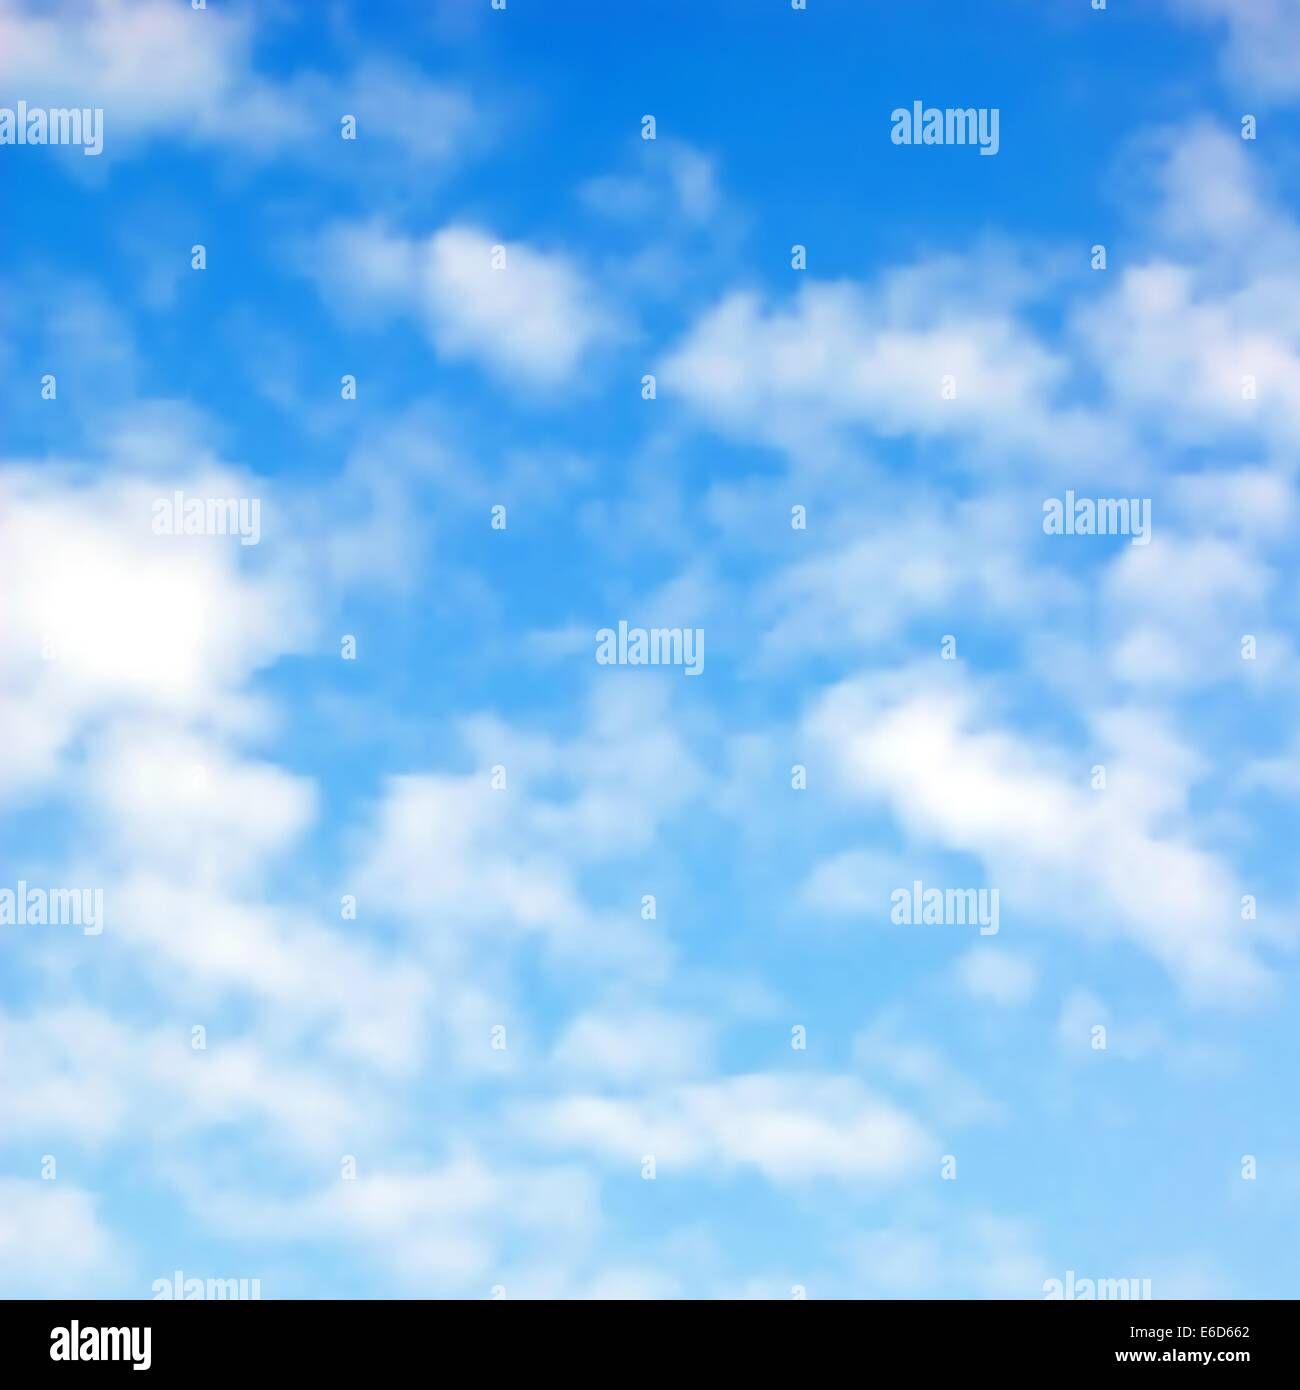 Editable vector illustration of fluffy white clouds in a blue sky made using a gradient mesh - Stock Vector